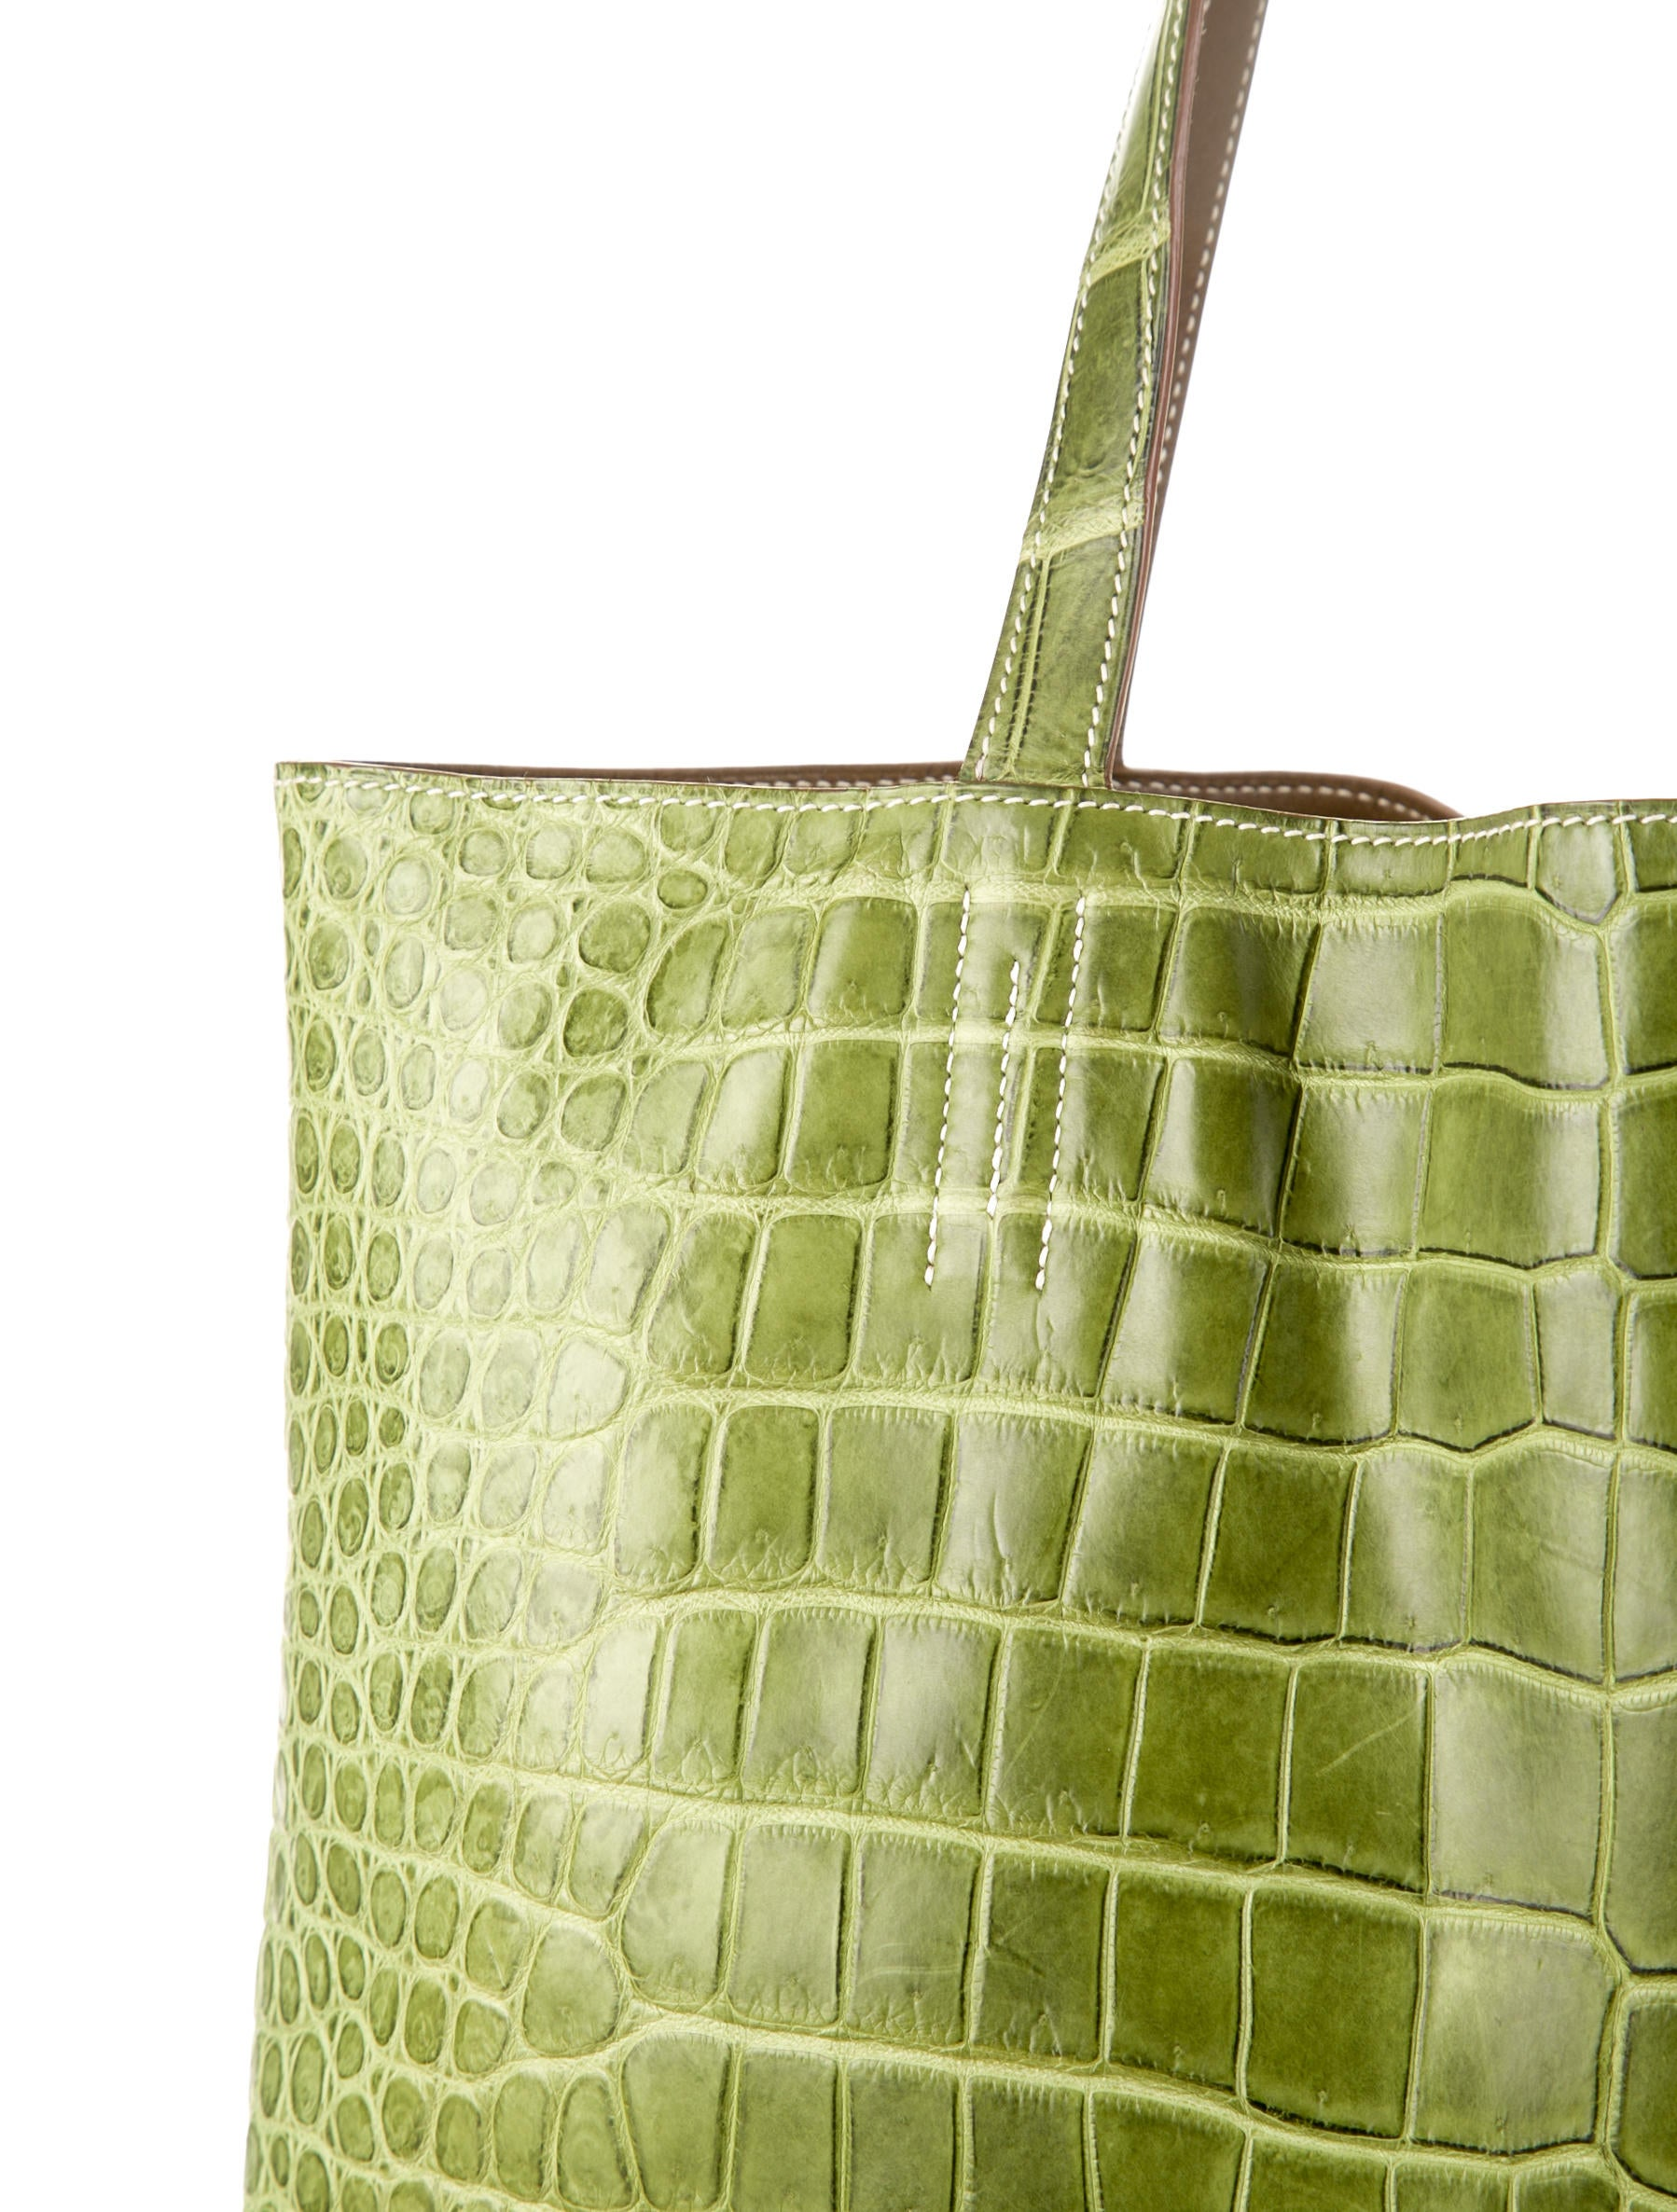 Herm��s Double Sens Croco Tote - Handbags - HER38211 | The RealReal